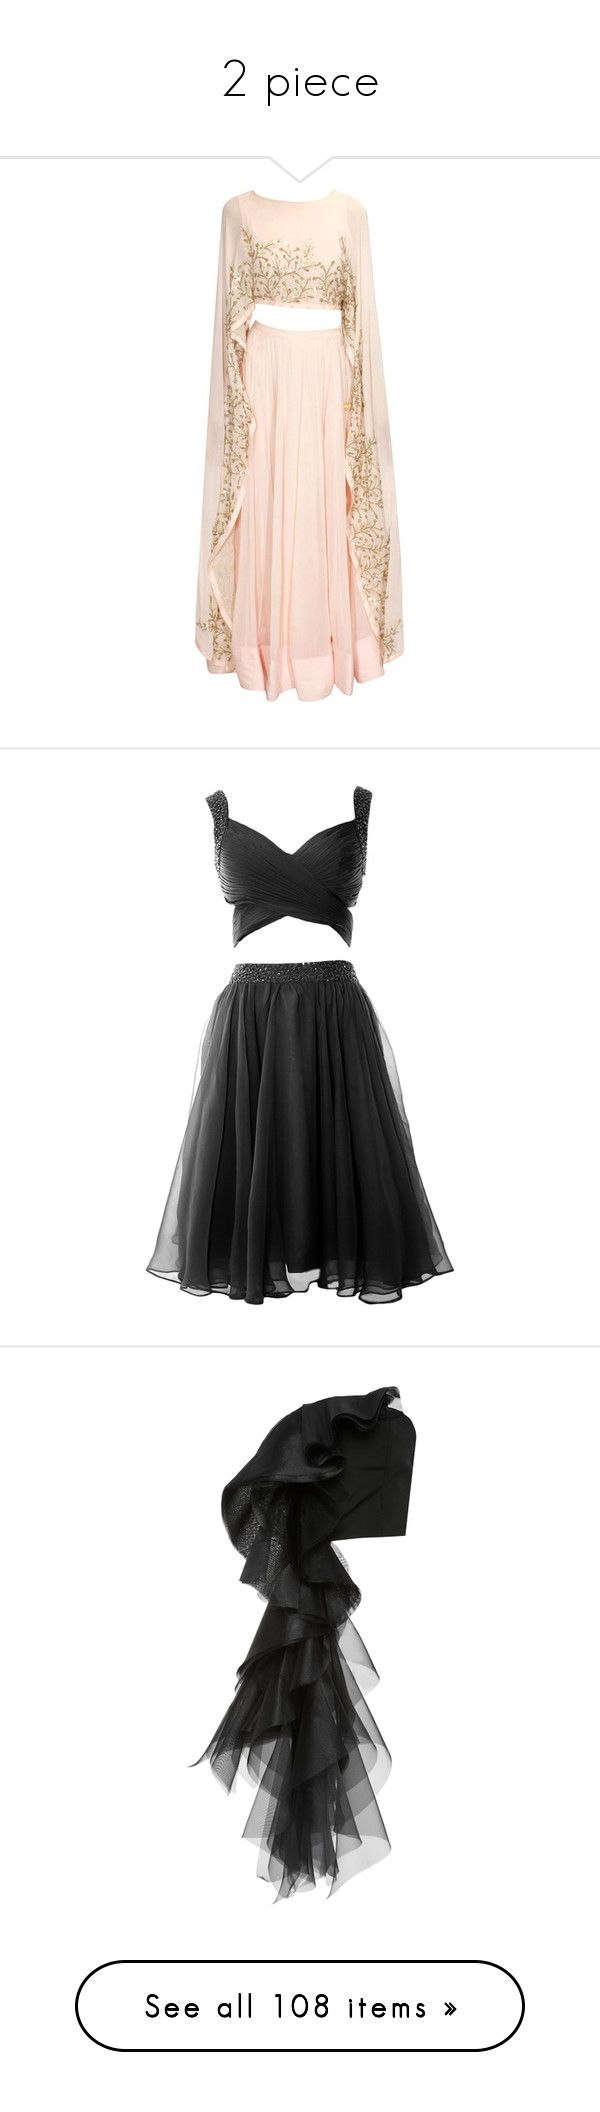 """""""2 piece"""" by casey-avery ❤ liked on Polyvore featuring dresses, two piece homecoming dresses, chiffon prom dresses, two piece dresses, 2 piece formal dresses, homecoming dresses, tops, christian siriano, bustiers and black"""